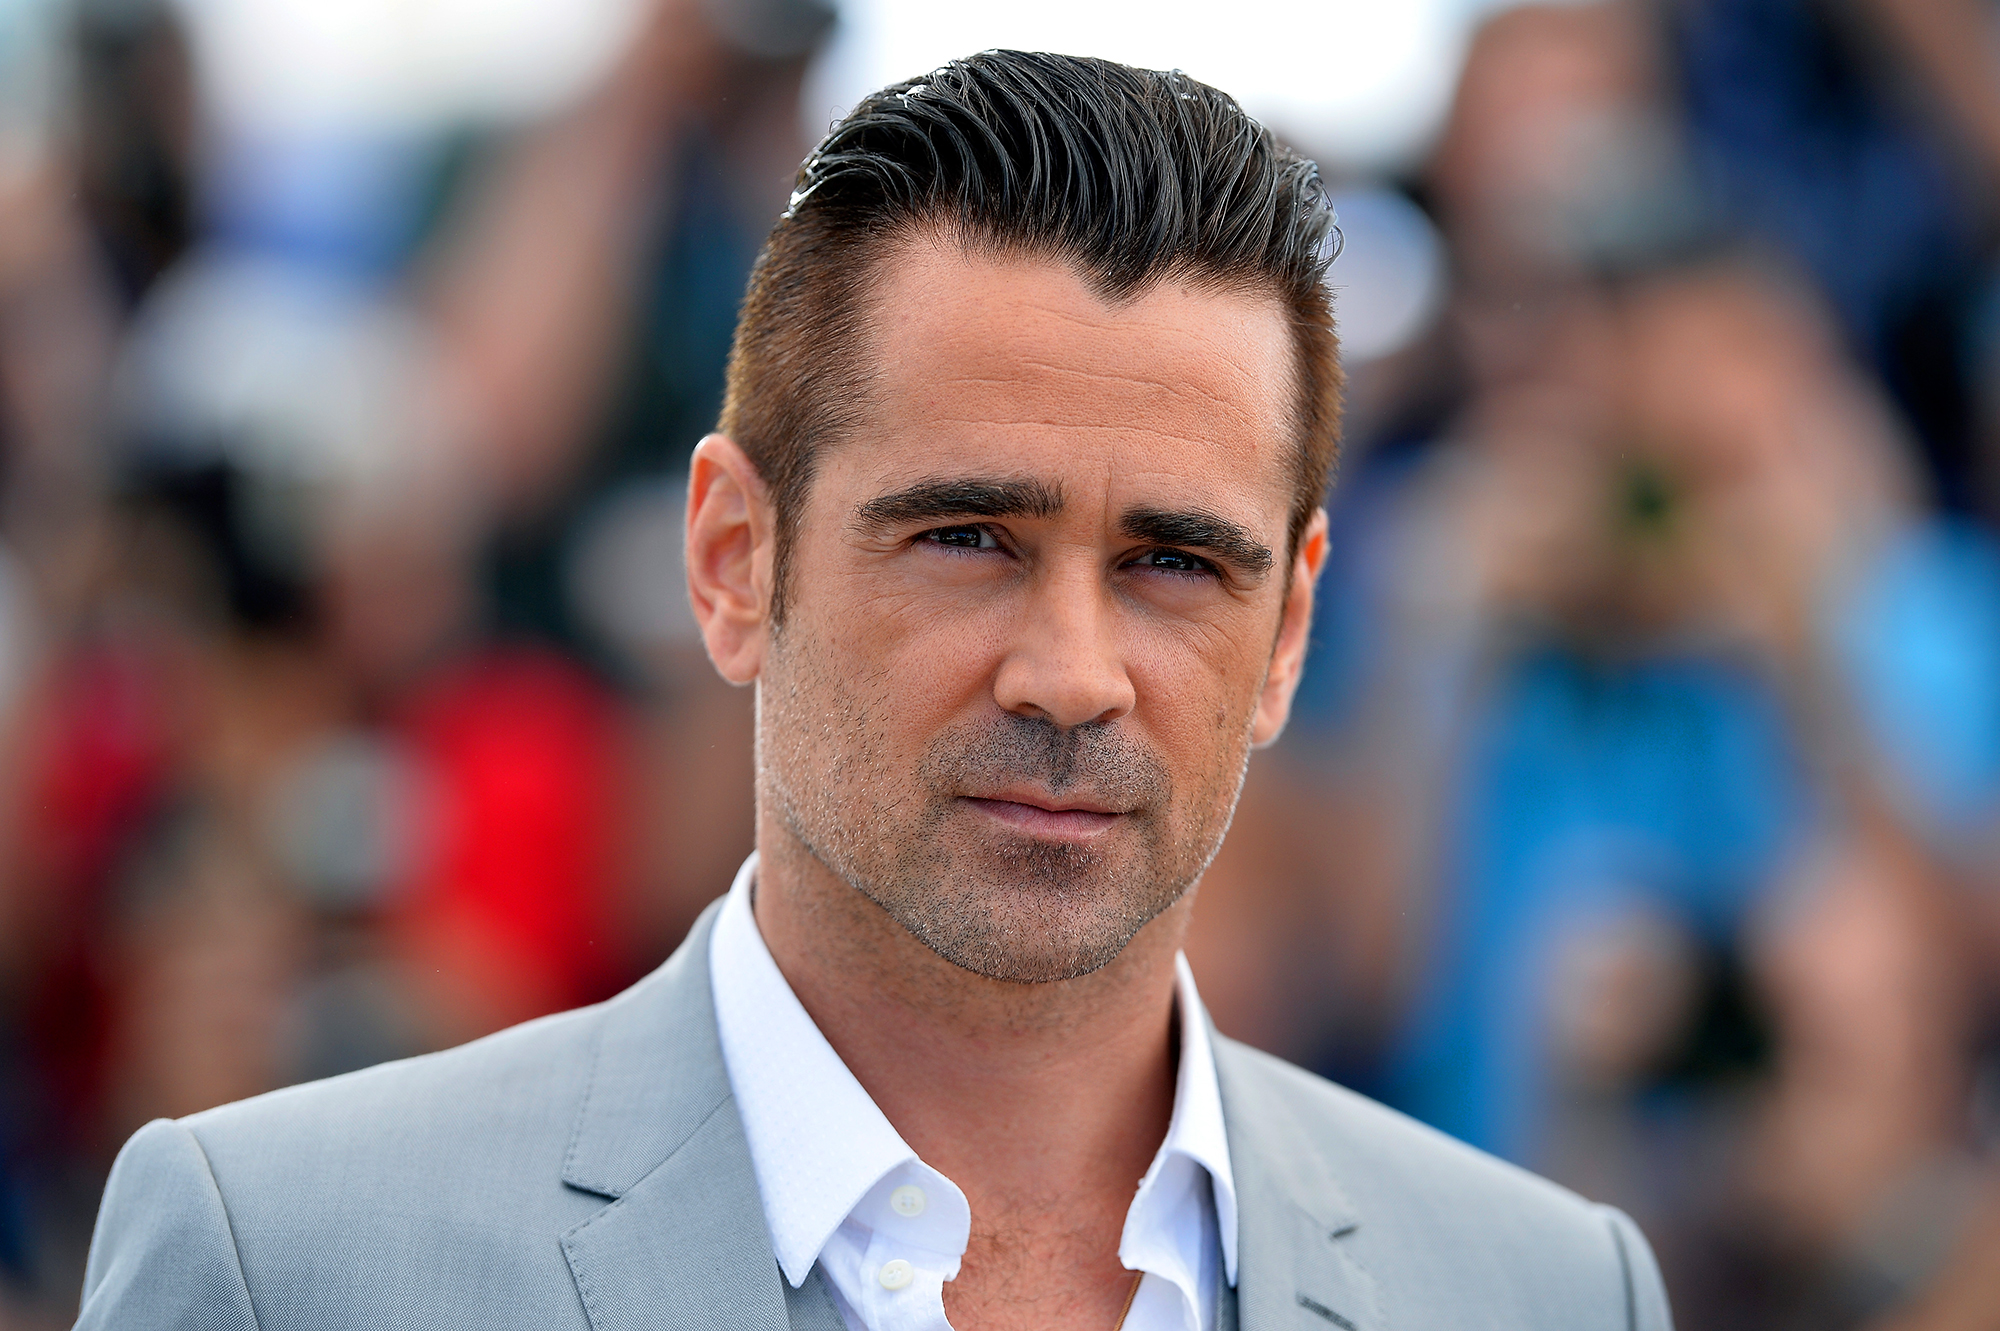 Colin Farrell Voluntarily Checks Into Rehab for 'Tune Up'